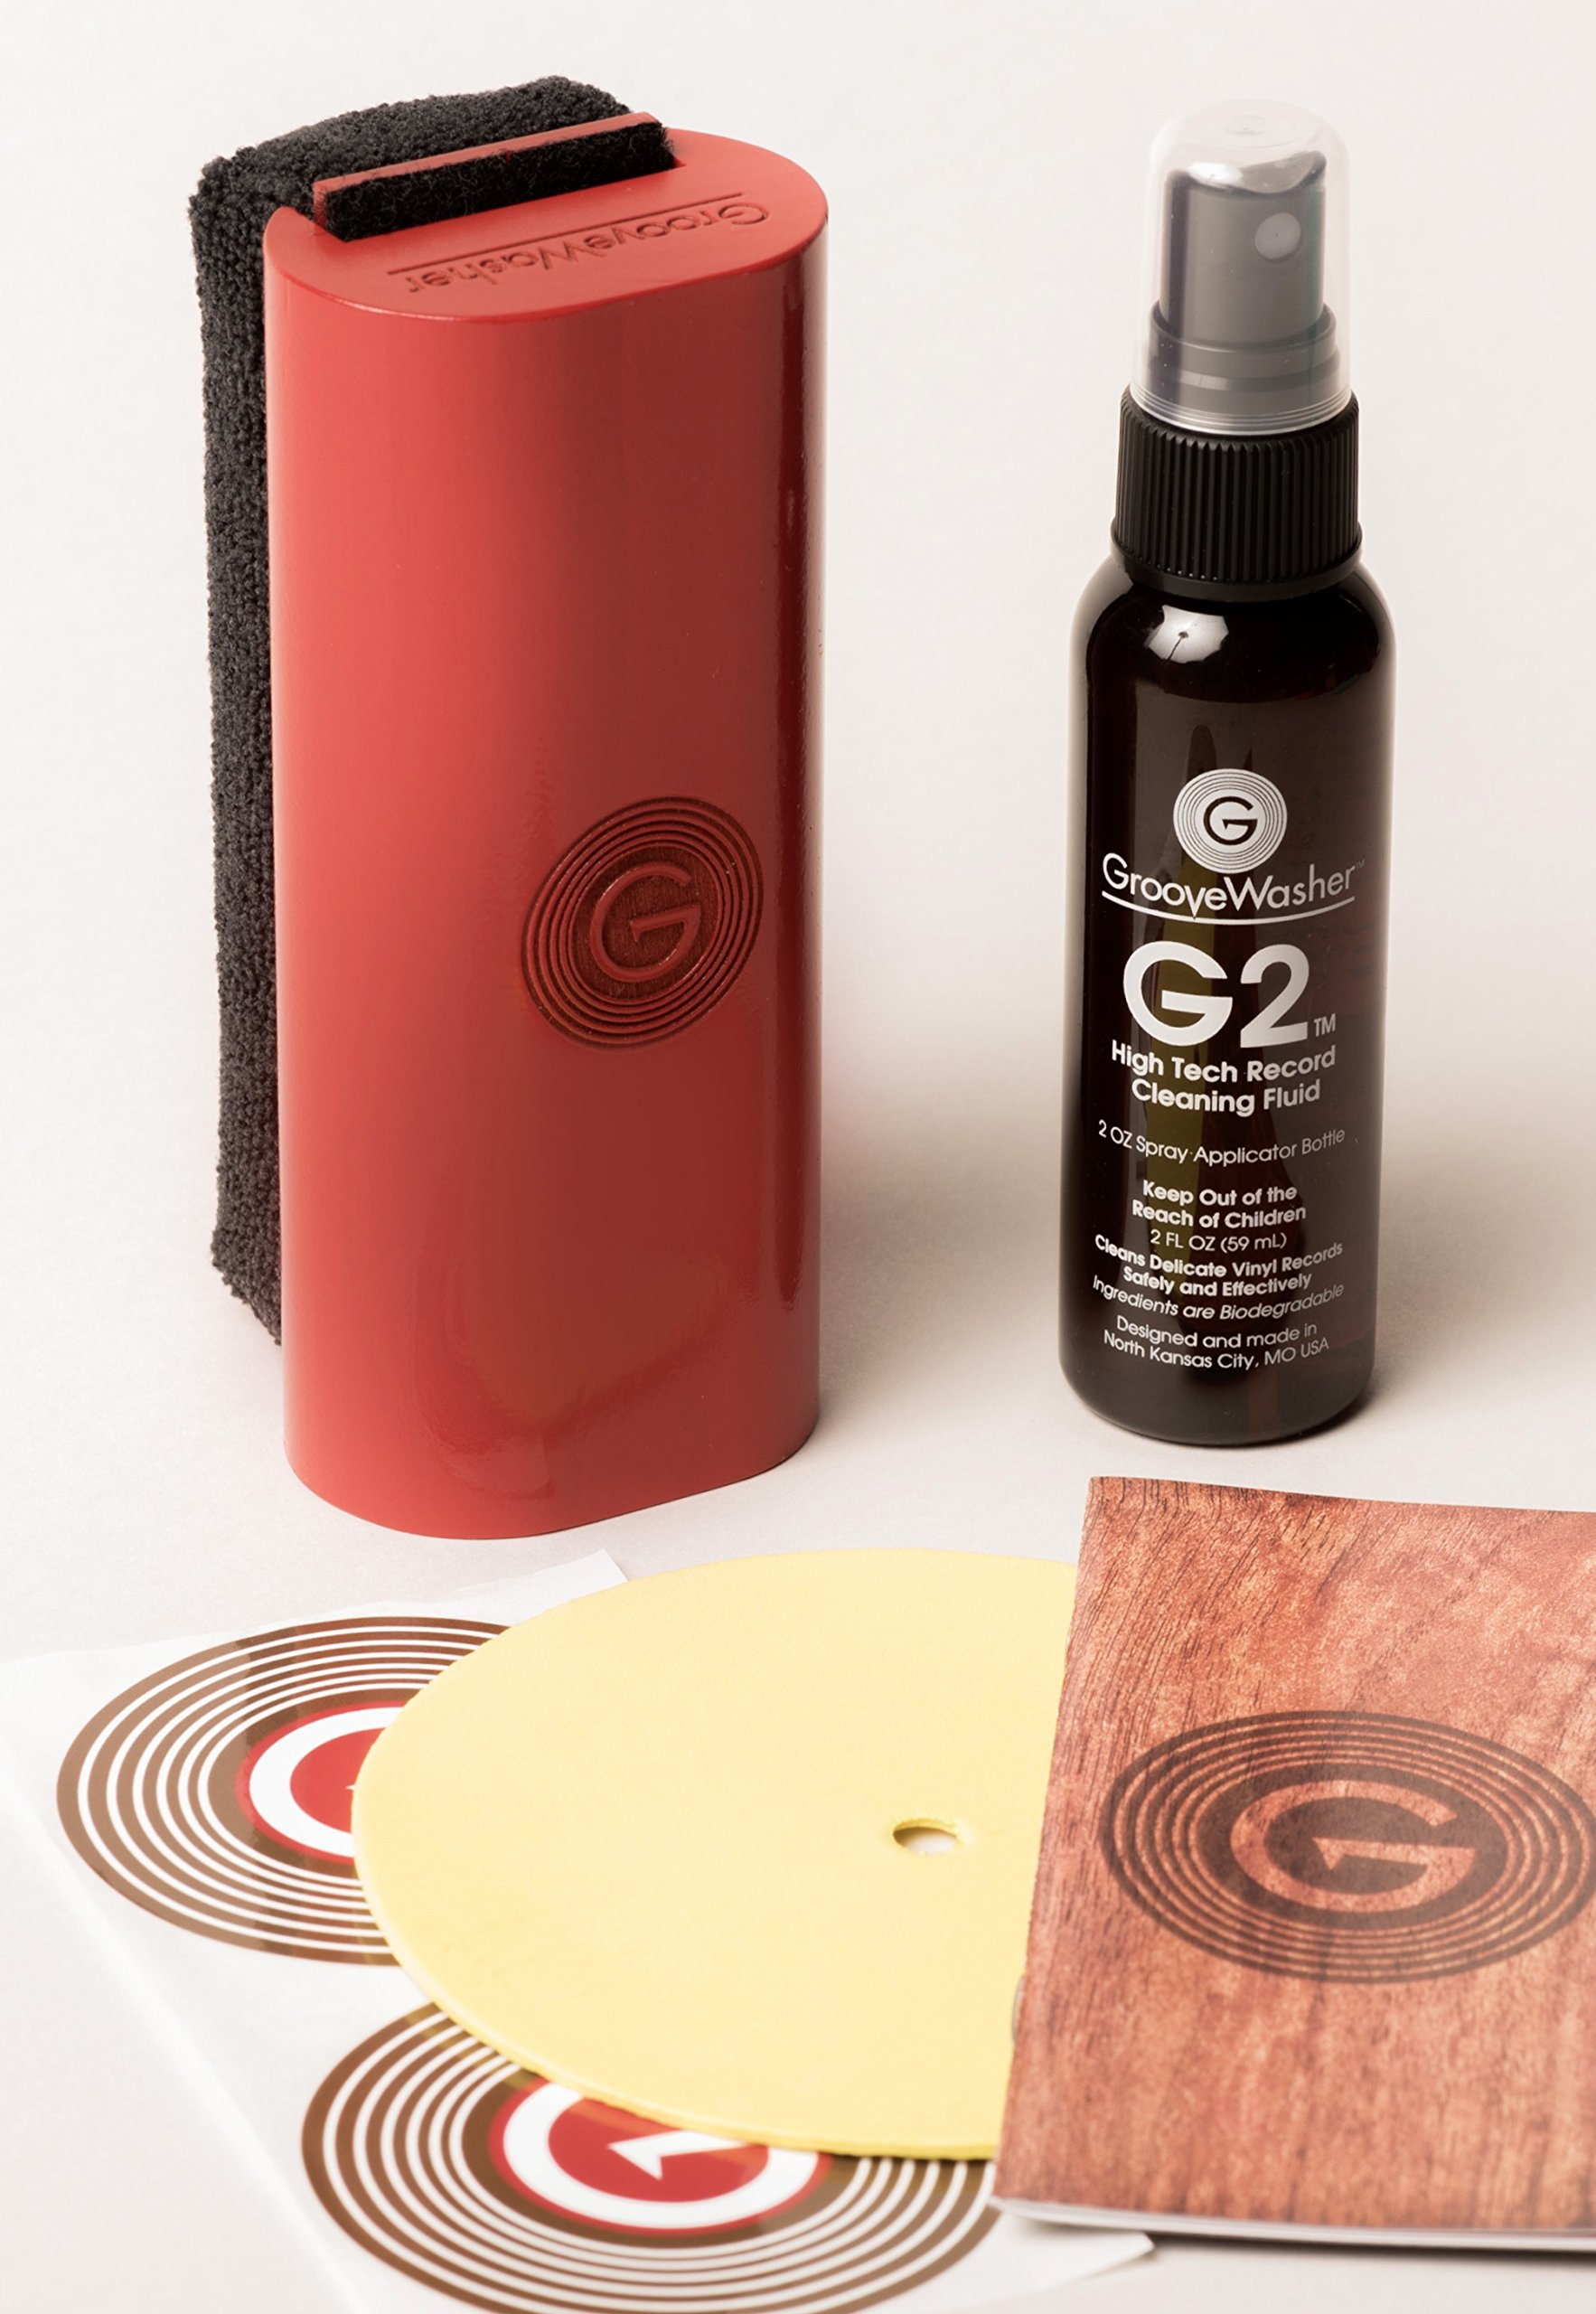 GrooveWasher Record Cleaning Kit-Red Hot Red